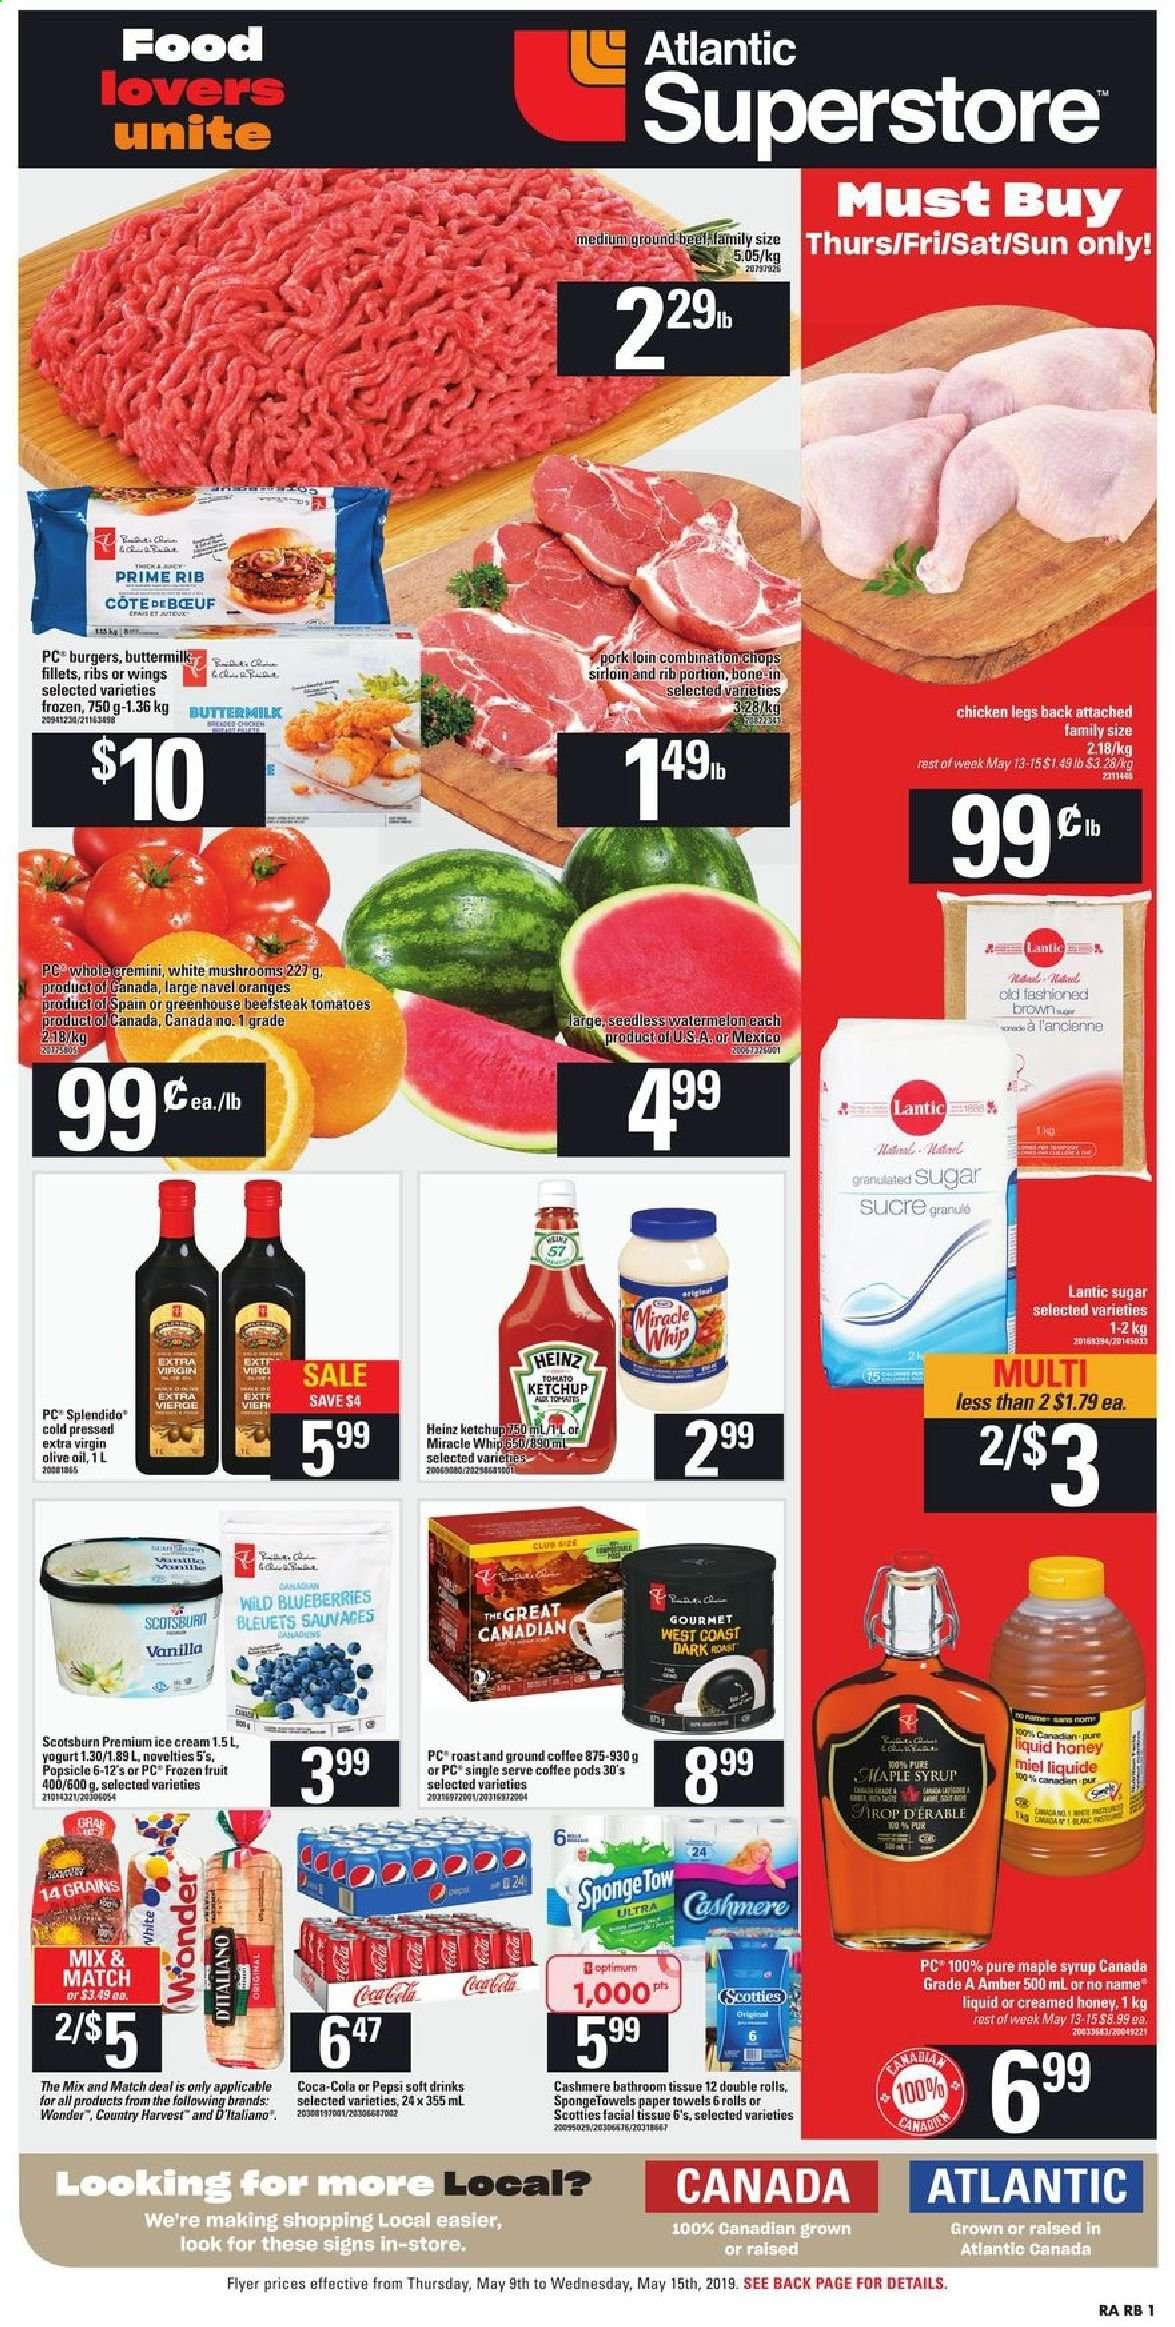 Atlantic Superstore Flyer  - May 09, 2019 - May 15, 2019. Page 1.